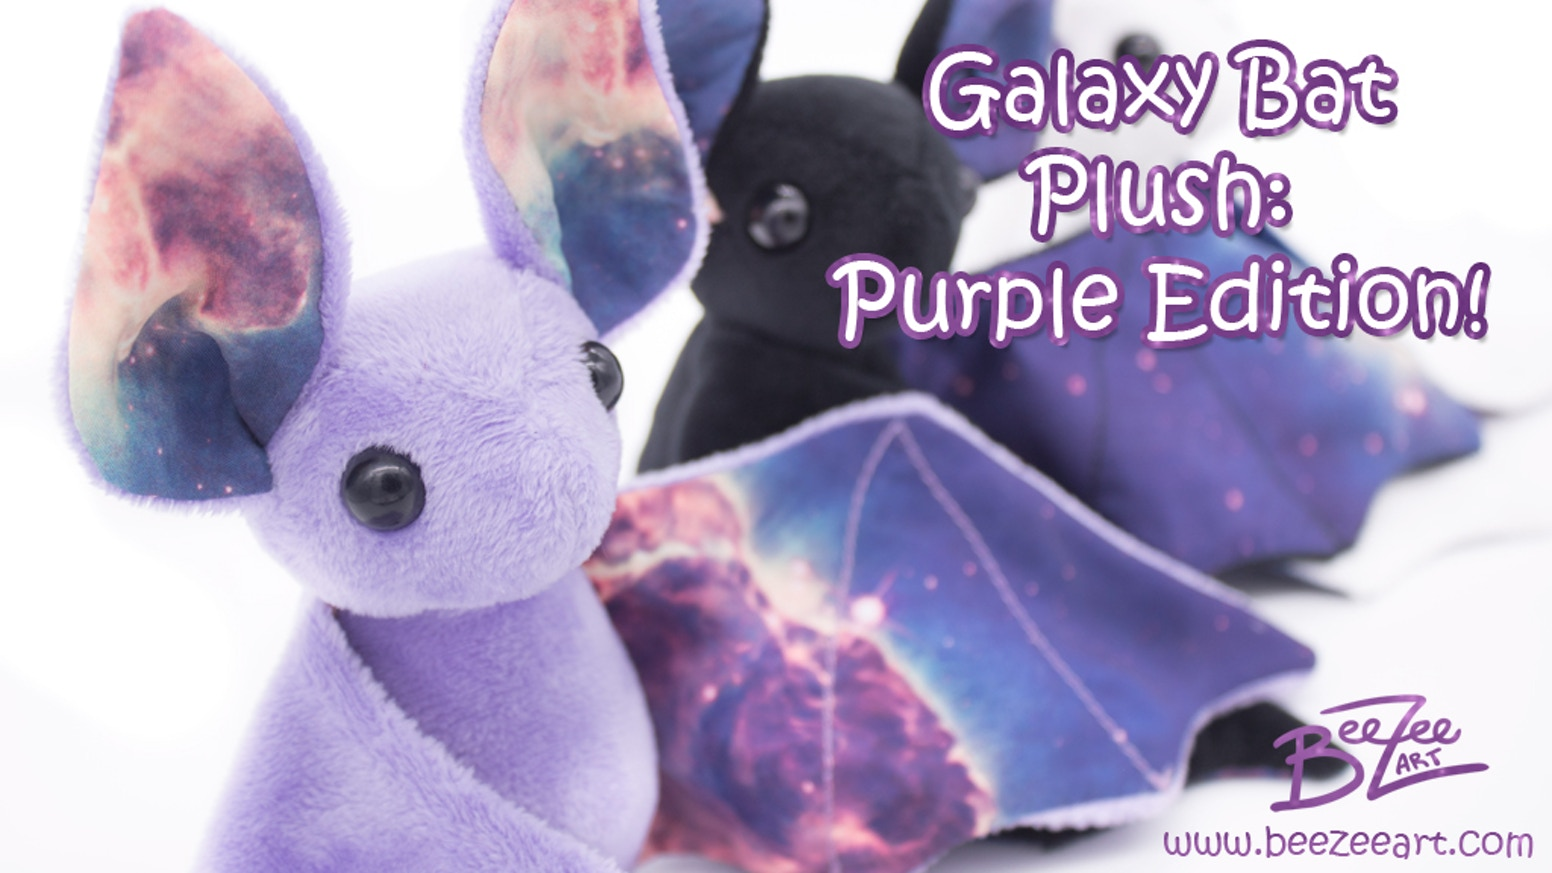 Bring home a bit of galaxy you can cuddle, now in color! Purple galaxy bat plushies are ready to join the galaxy bat family. Pre-Order at www.beezeeart.com!